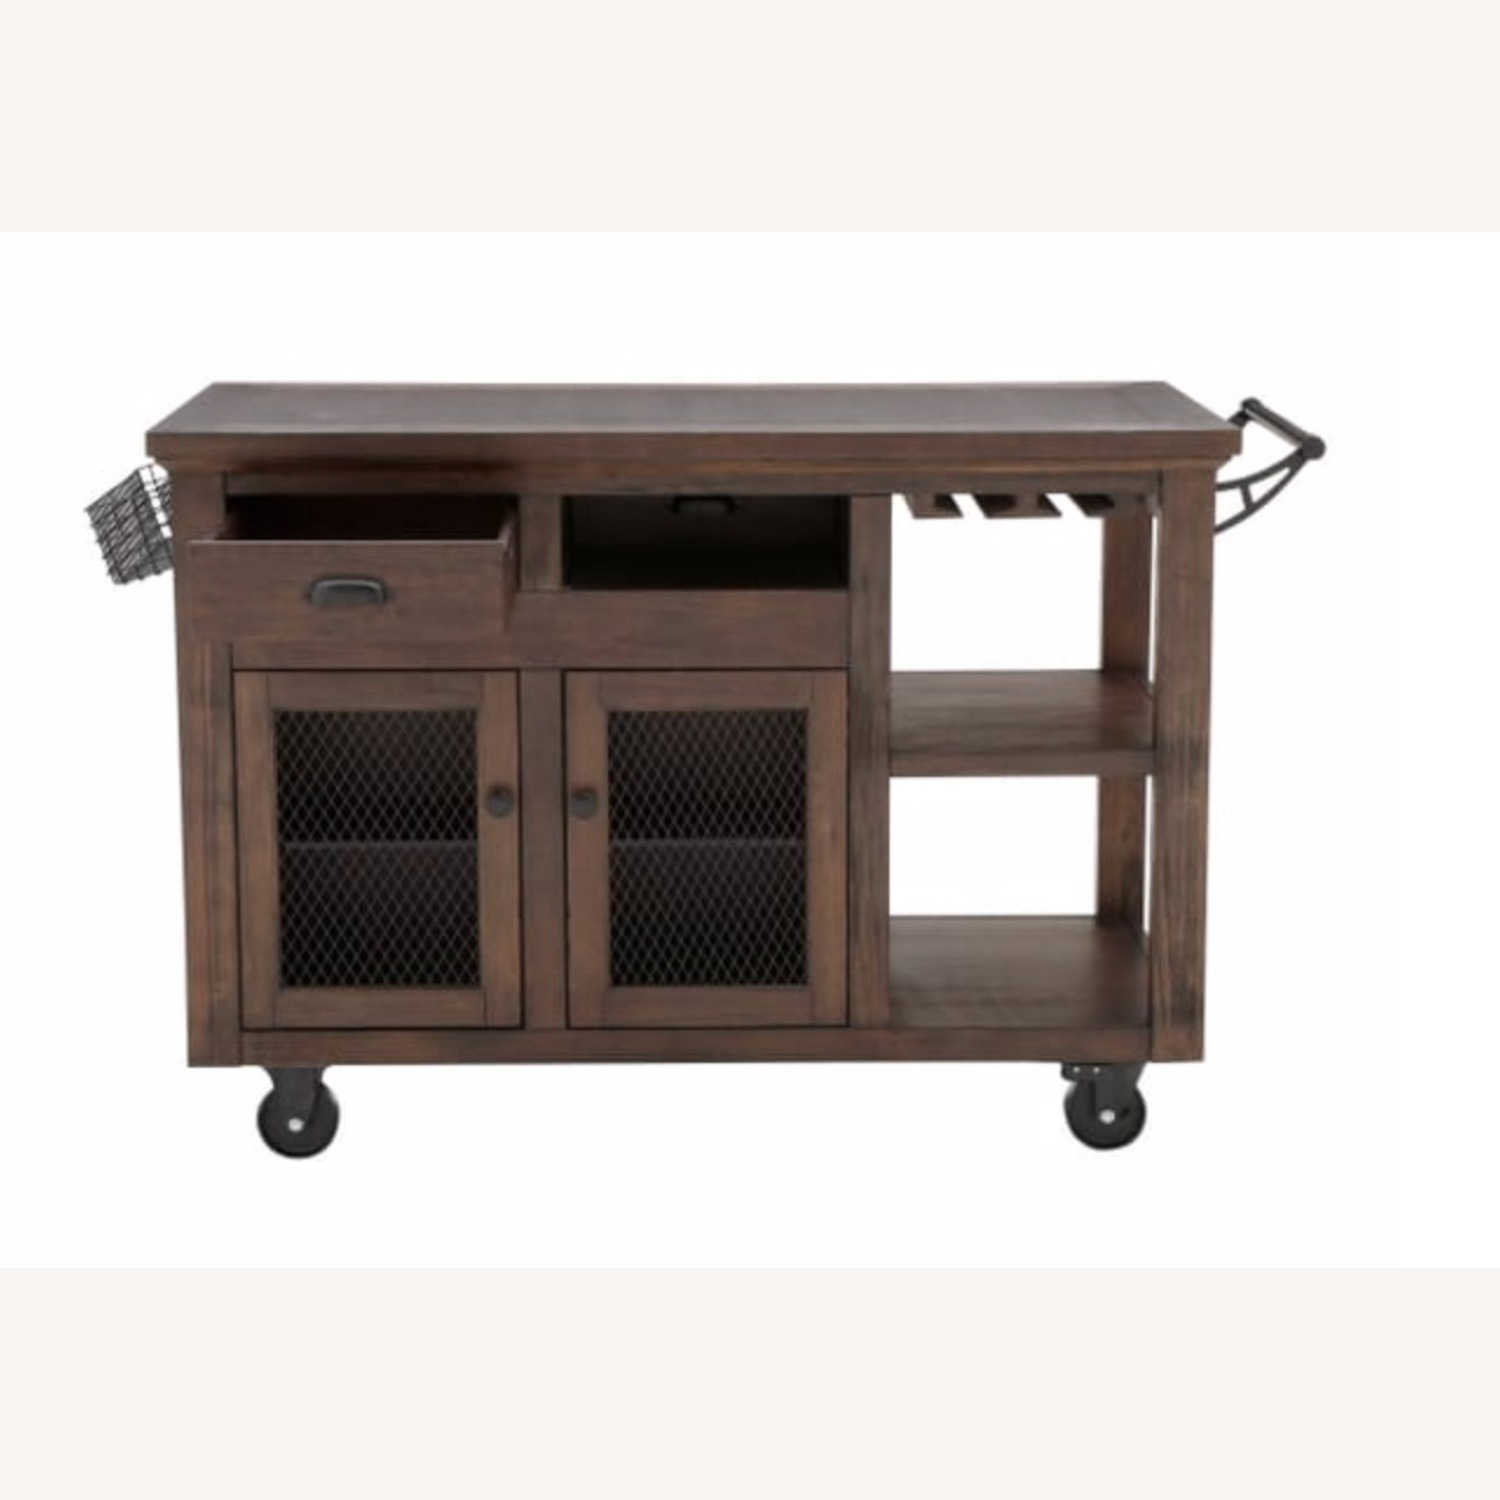 Cooper Rustic Walnut Kitchen Cart with Storage - image-3